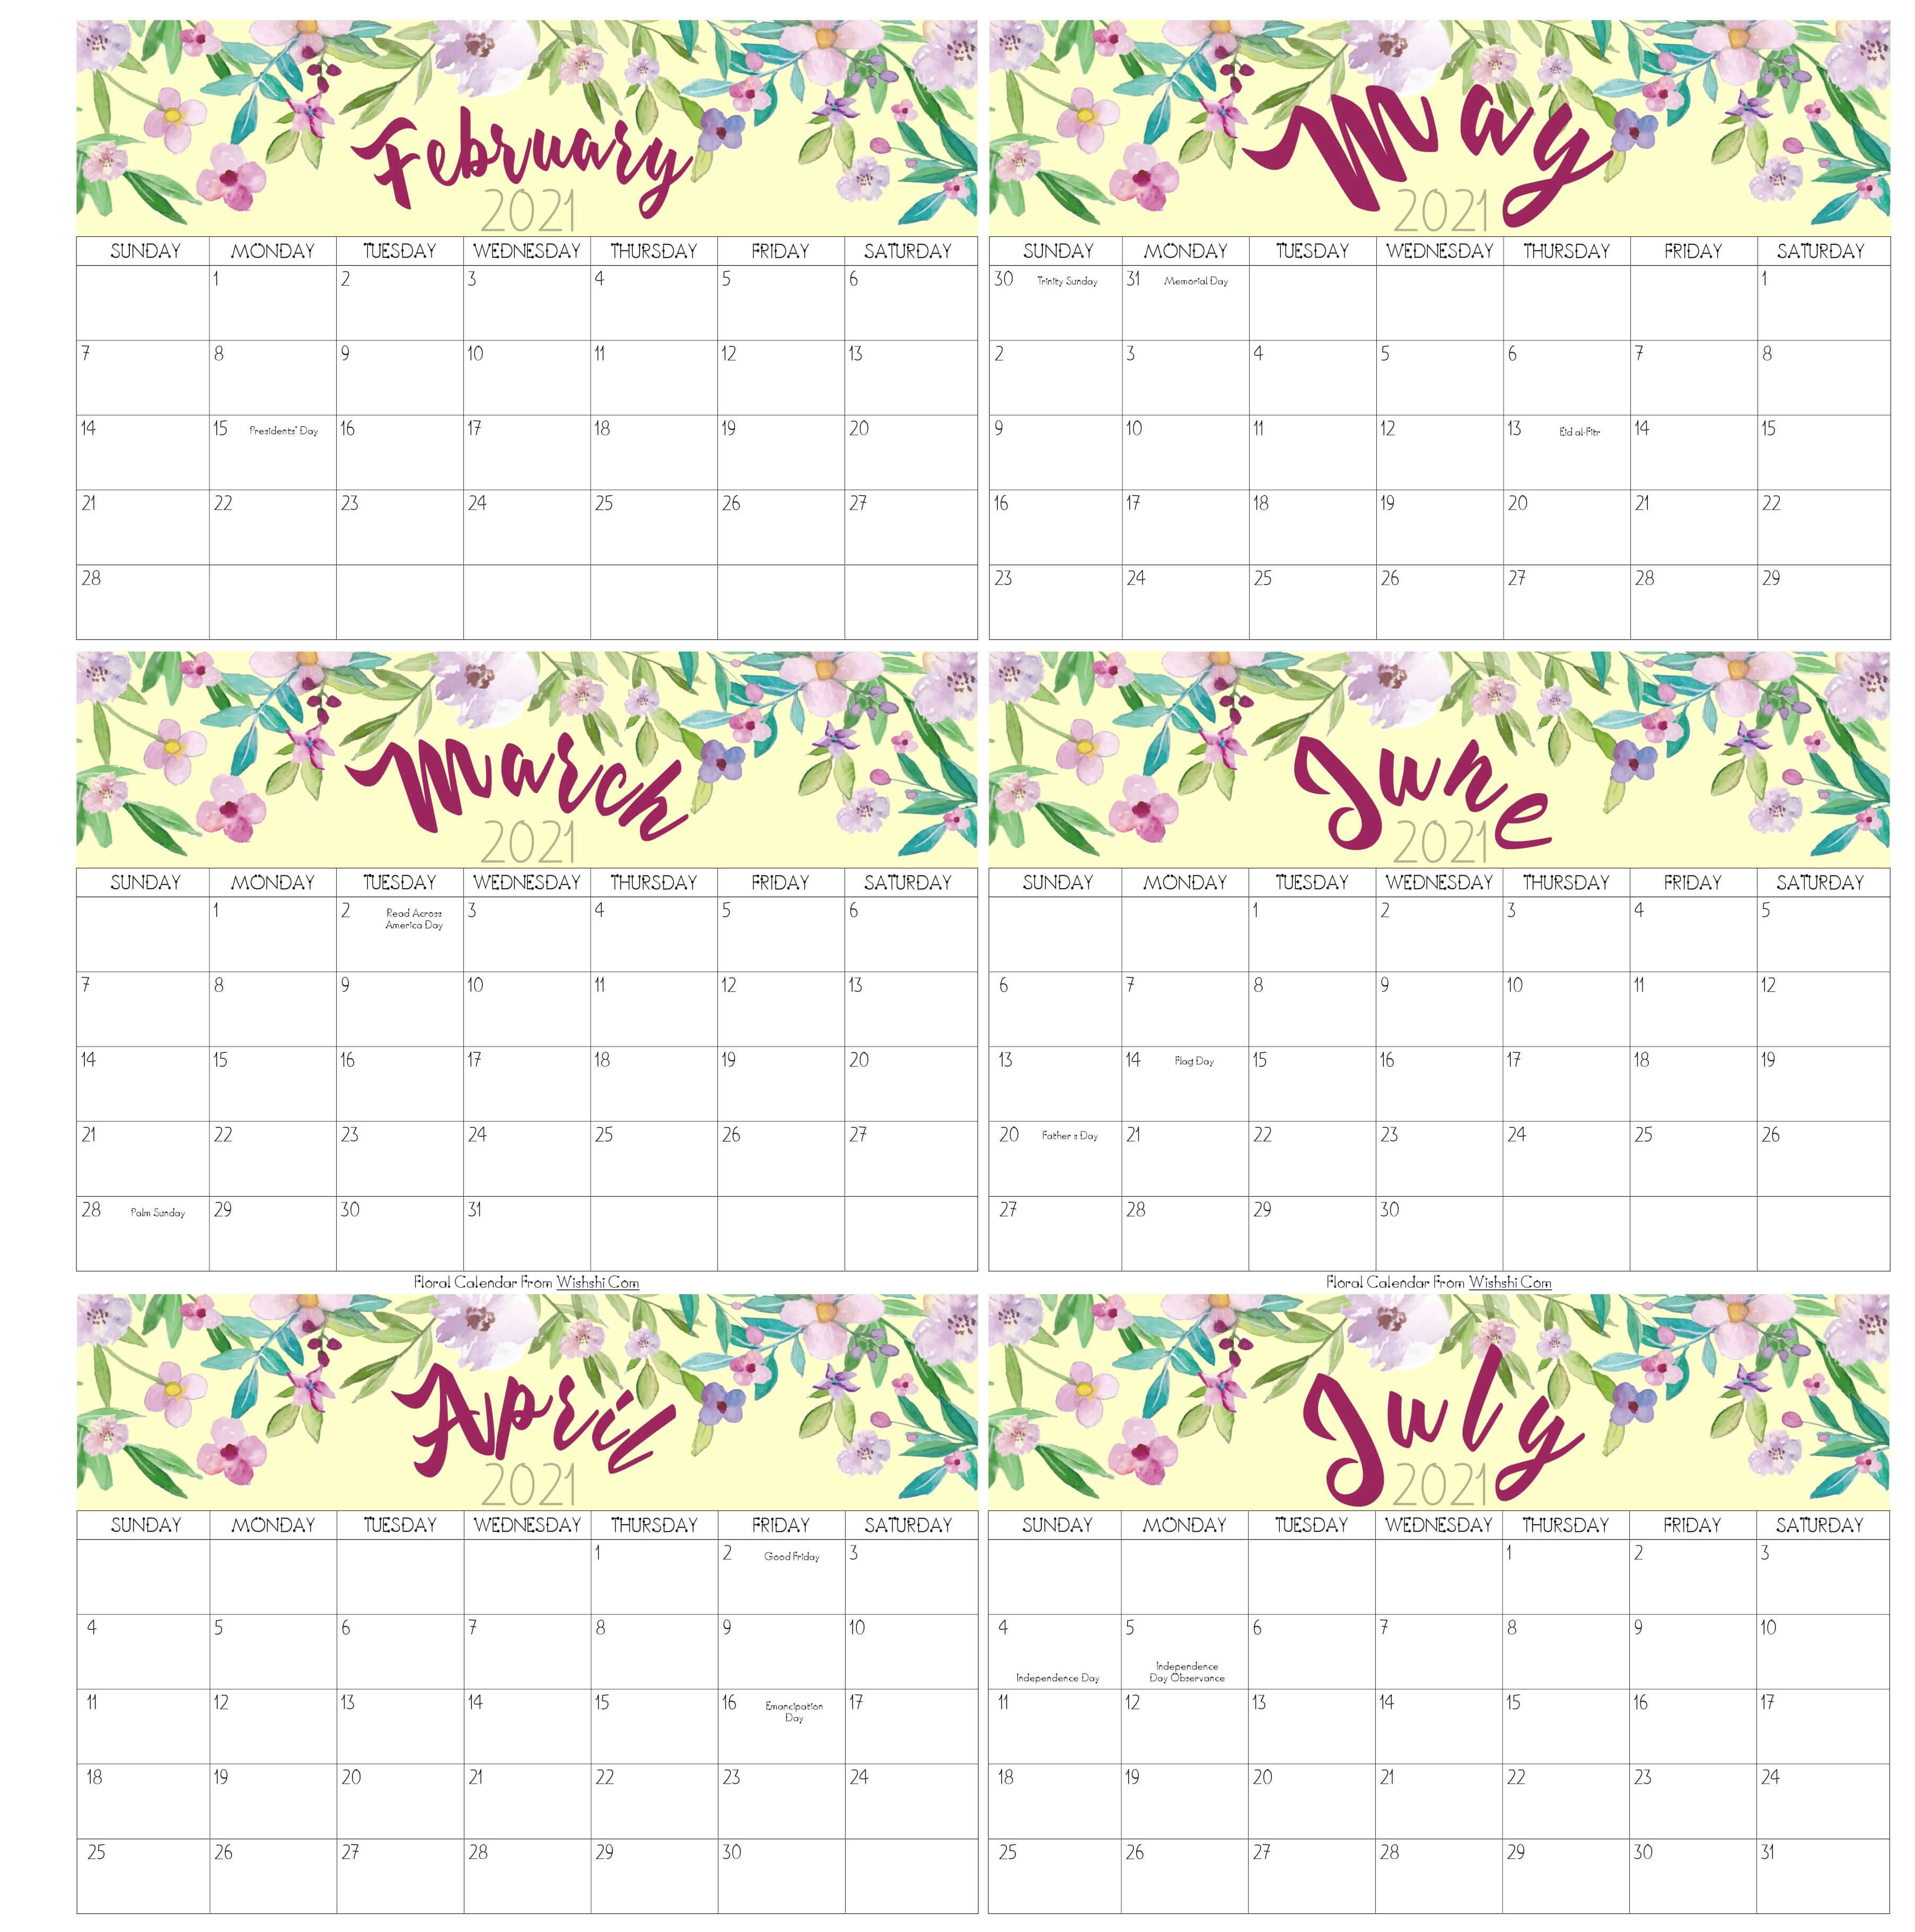 February To July Calendar 2021 With Holidays